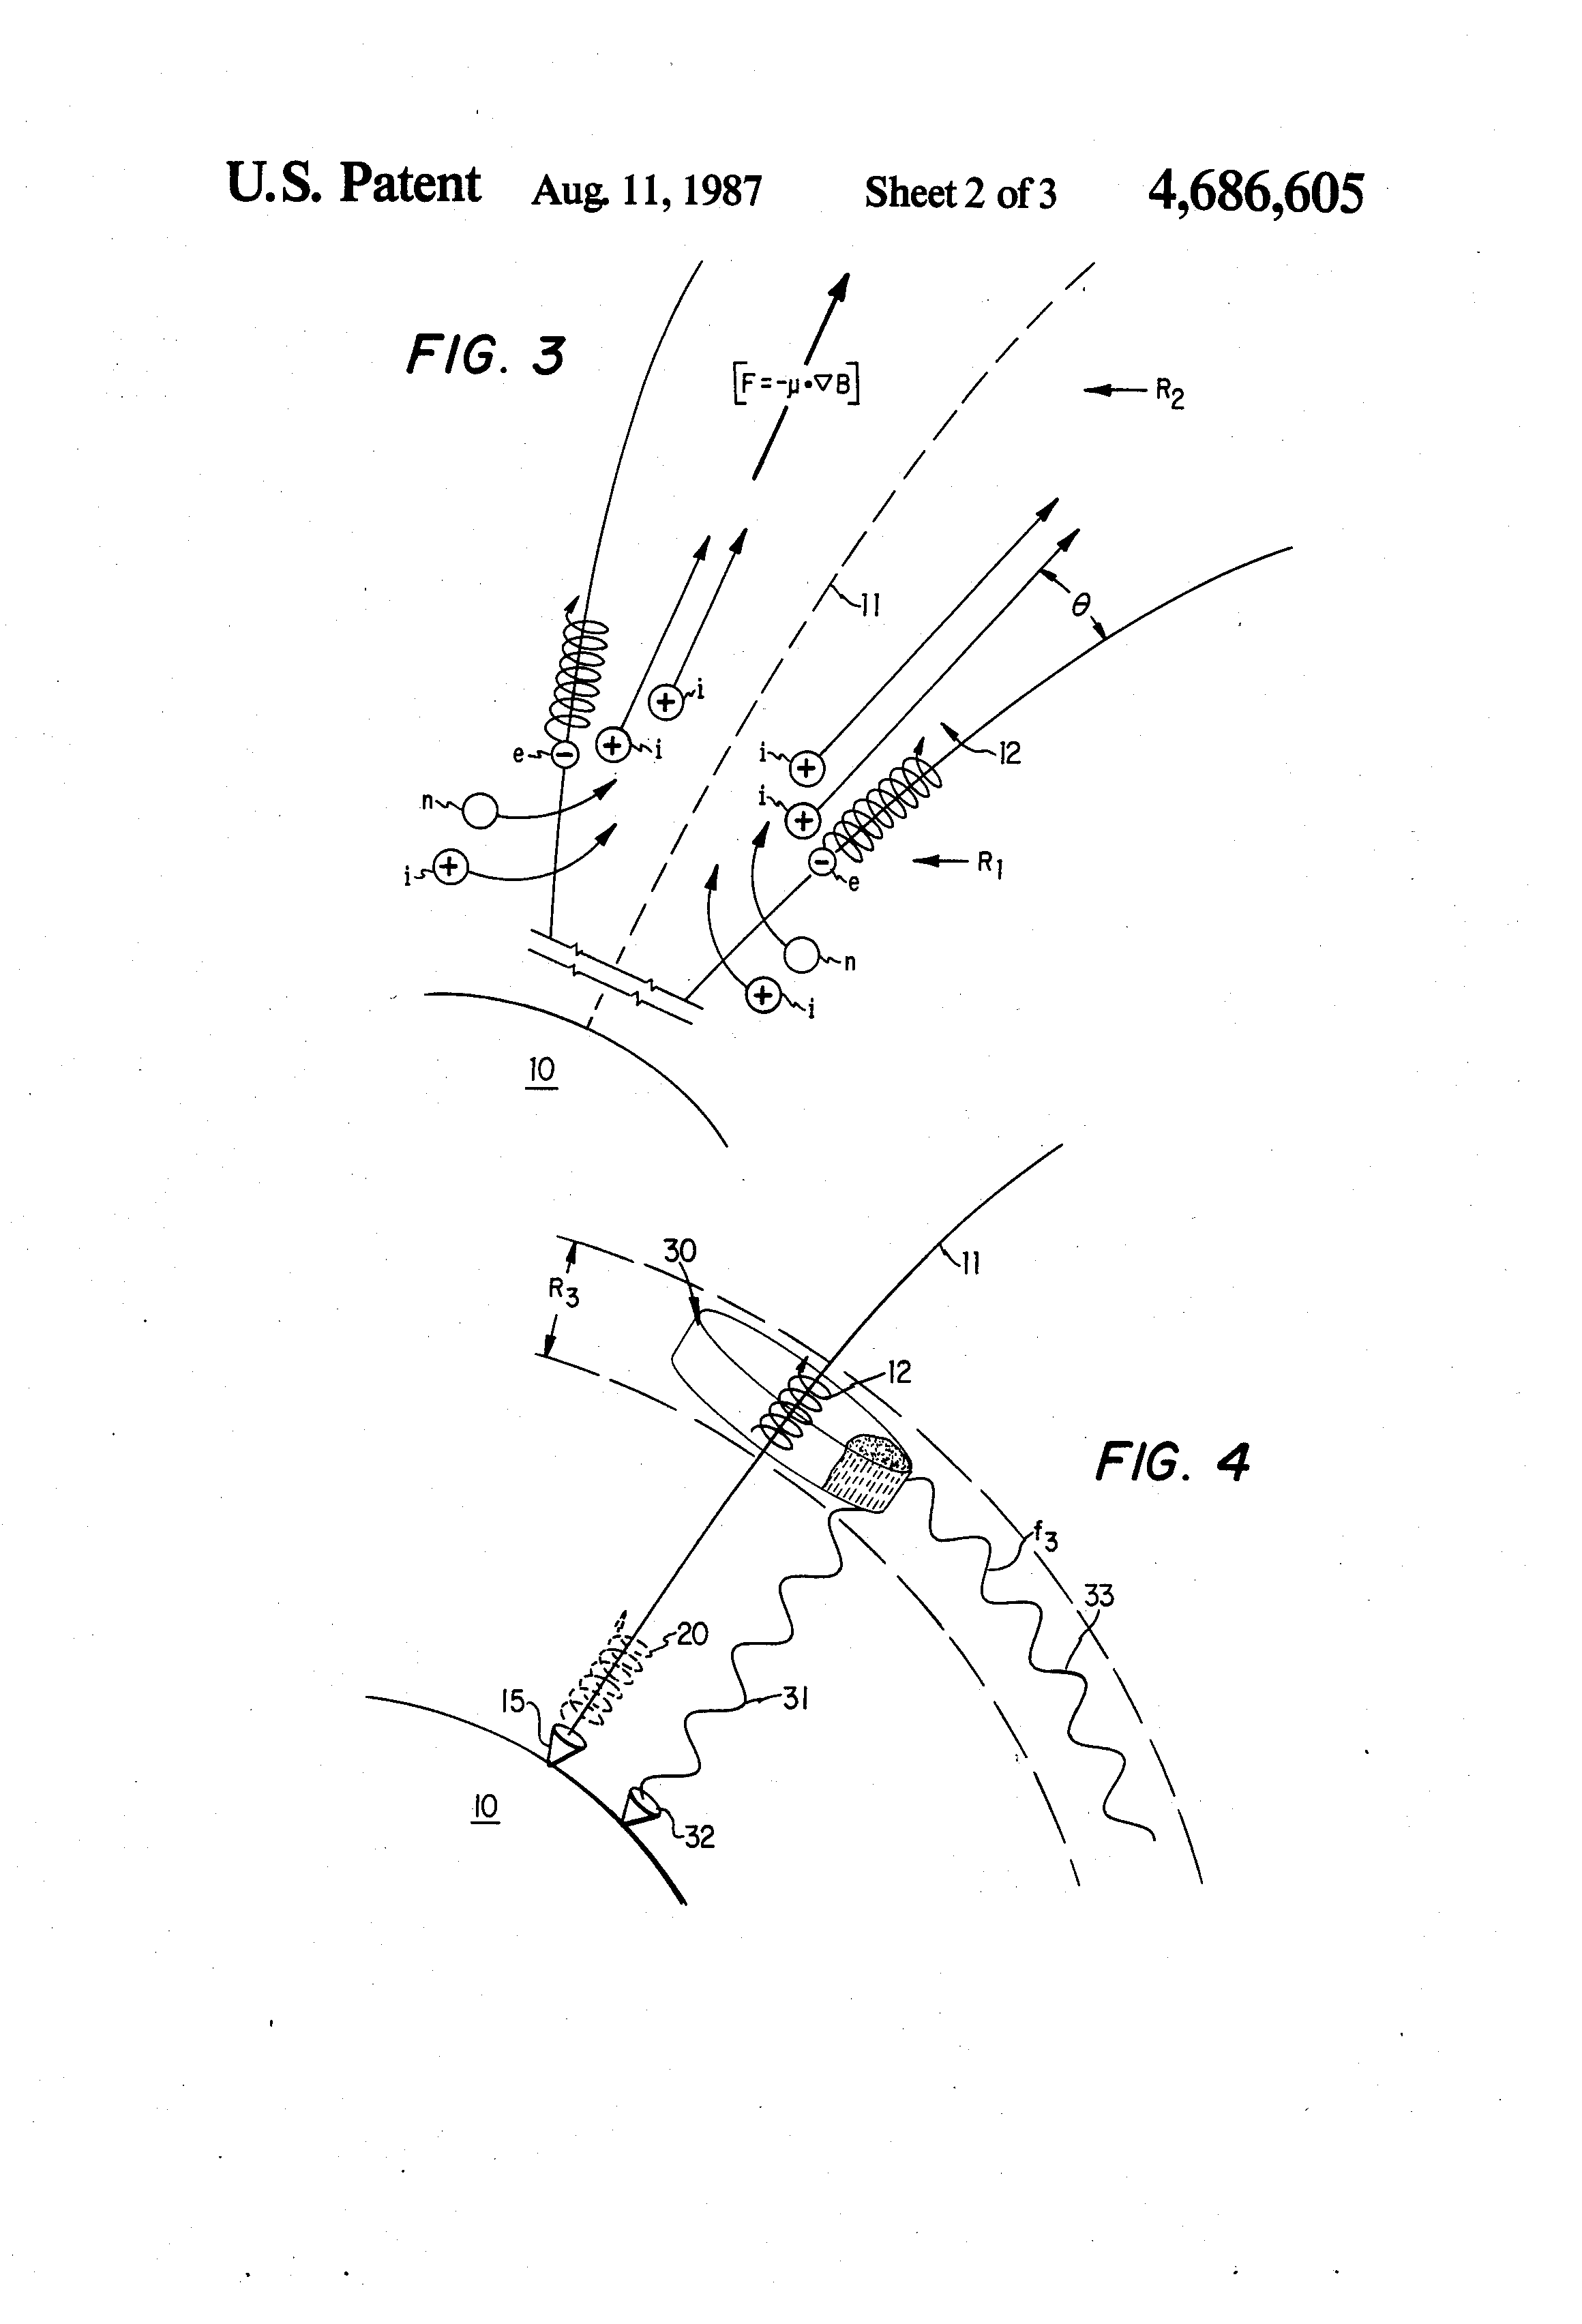 Method and apparatus for altering a region in the earth's atmosphere, ionosphere, and/or magnetosphere - Patent US 4,686,605 US4686605-2